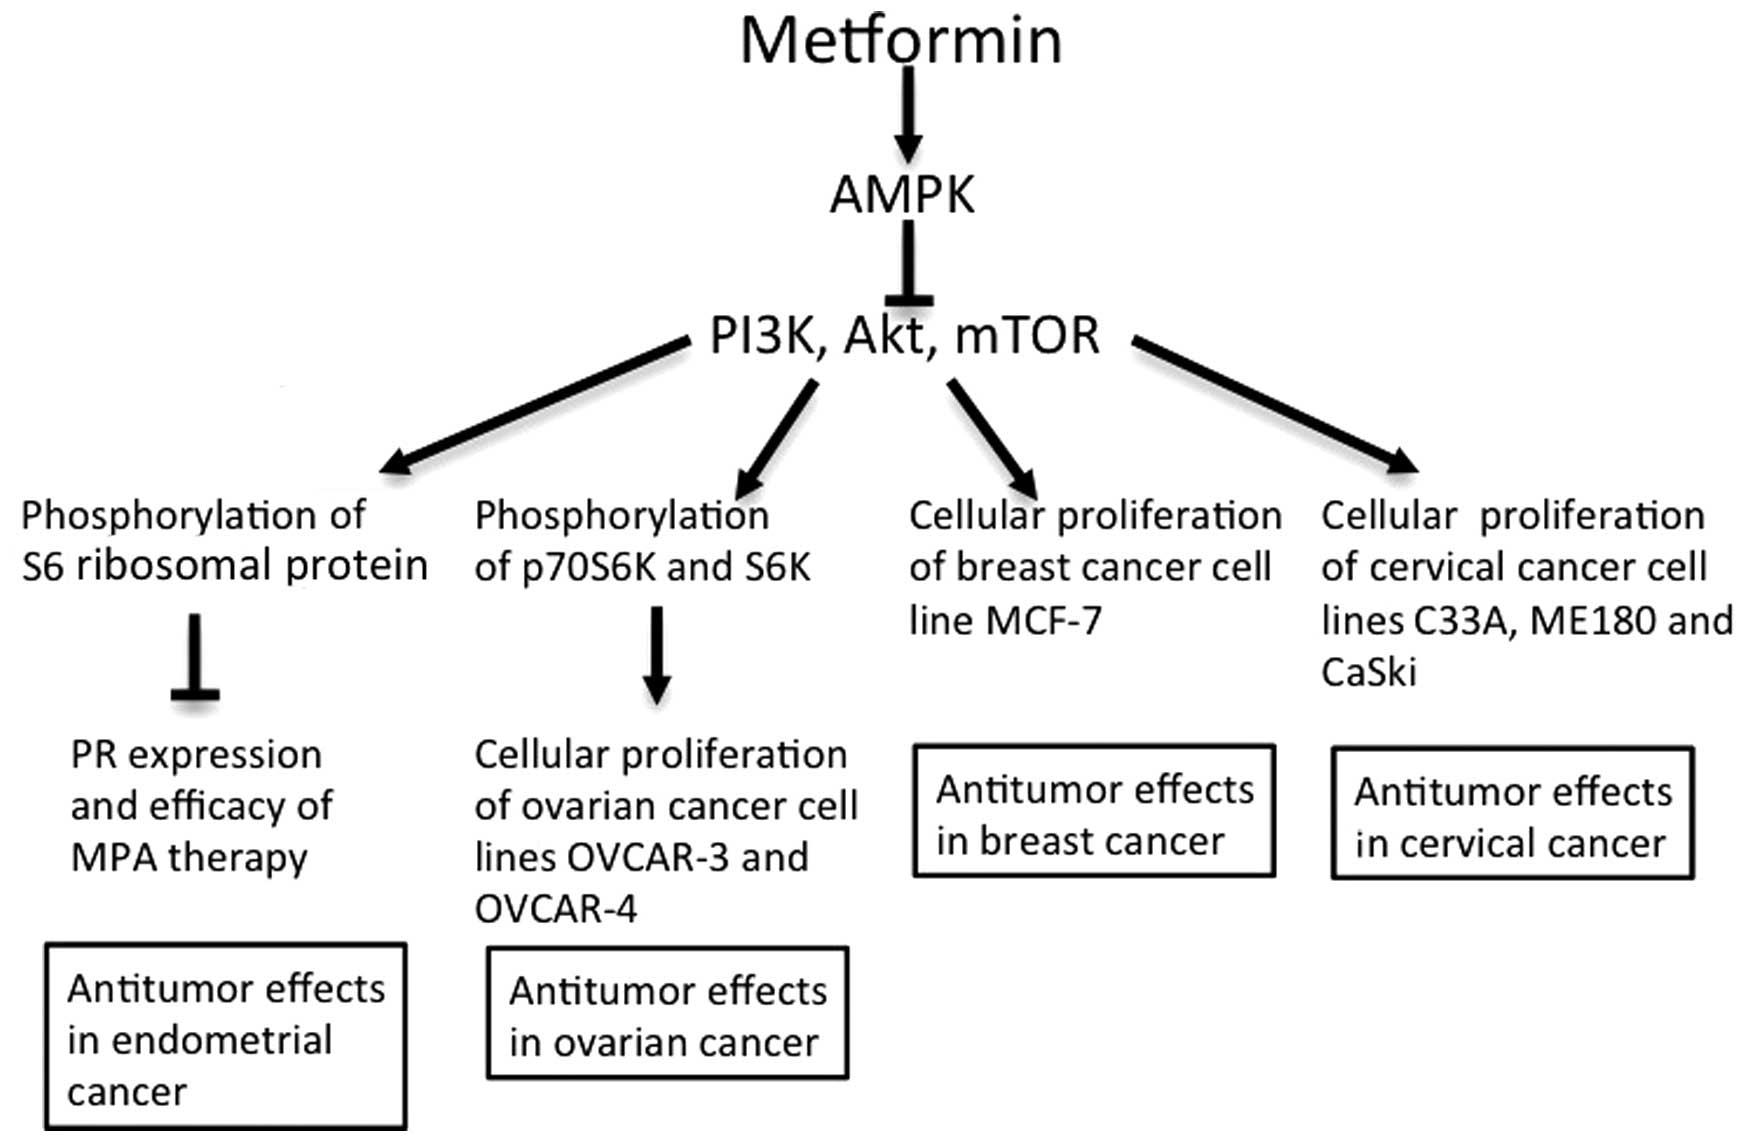 Metformin: A candidate for the treatment of gynecological tumors